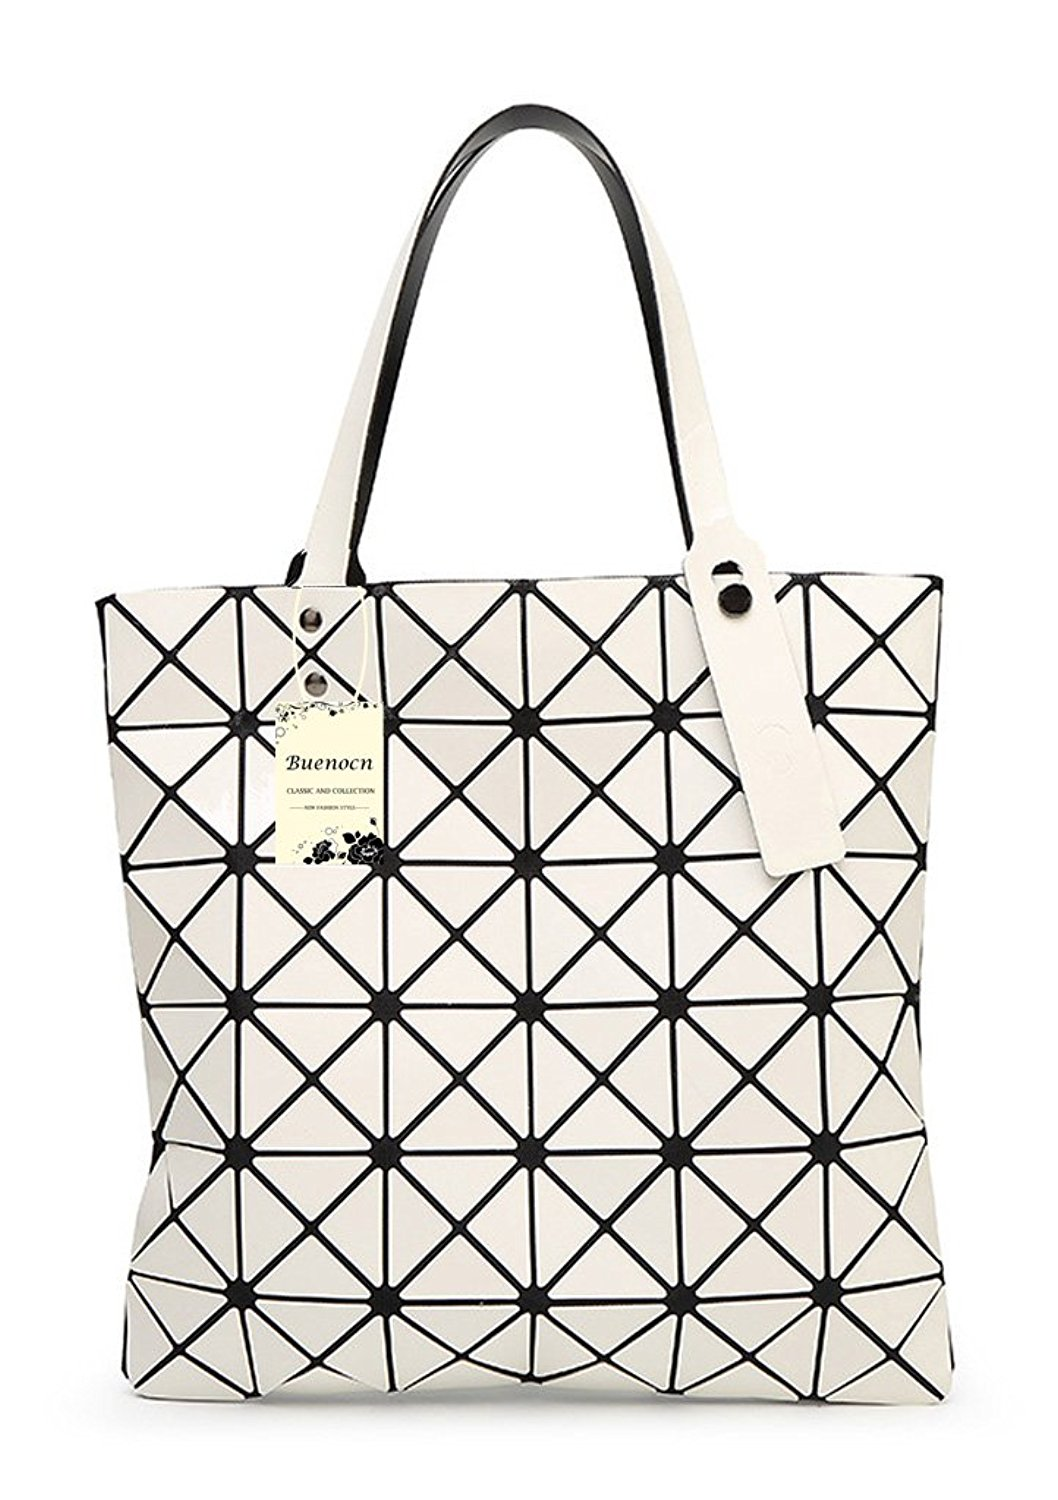 01304559a0c9 Get Quotations · Womens Checkered Tote Bag